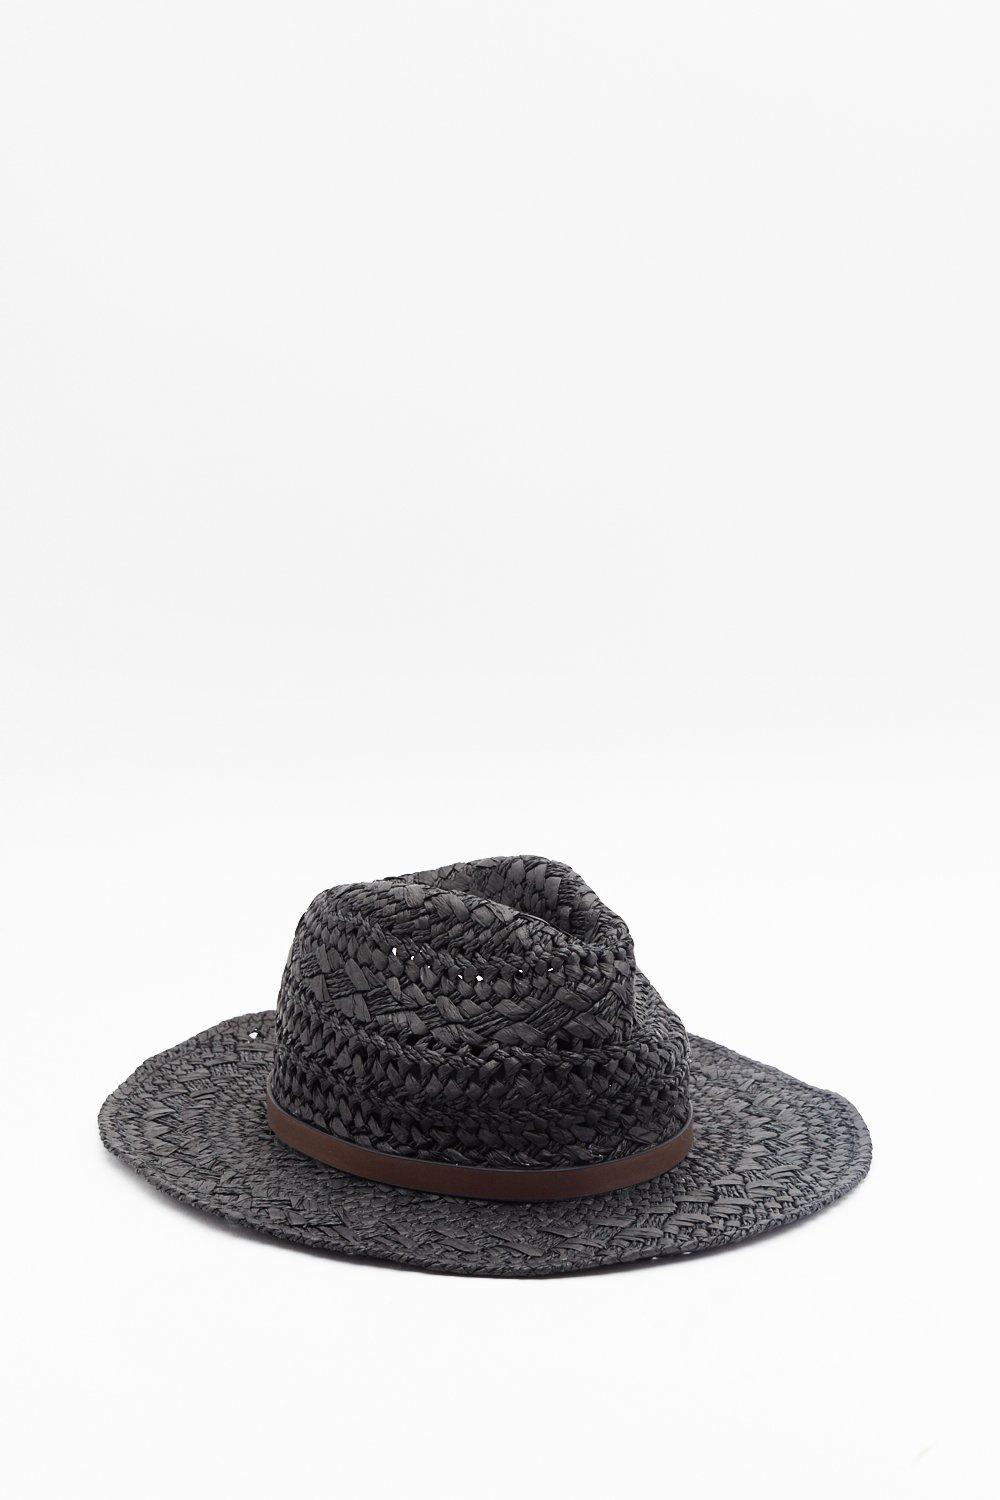 0cb570495dd10 Straw It Coming Woven Hat   Shop Clothes at Nasty Gal!